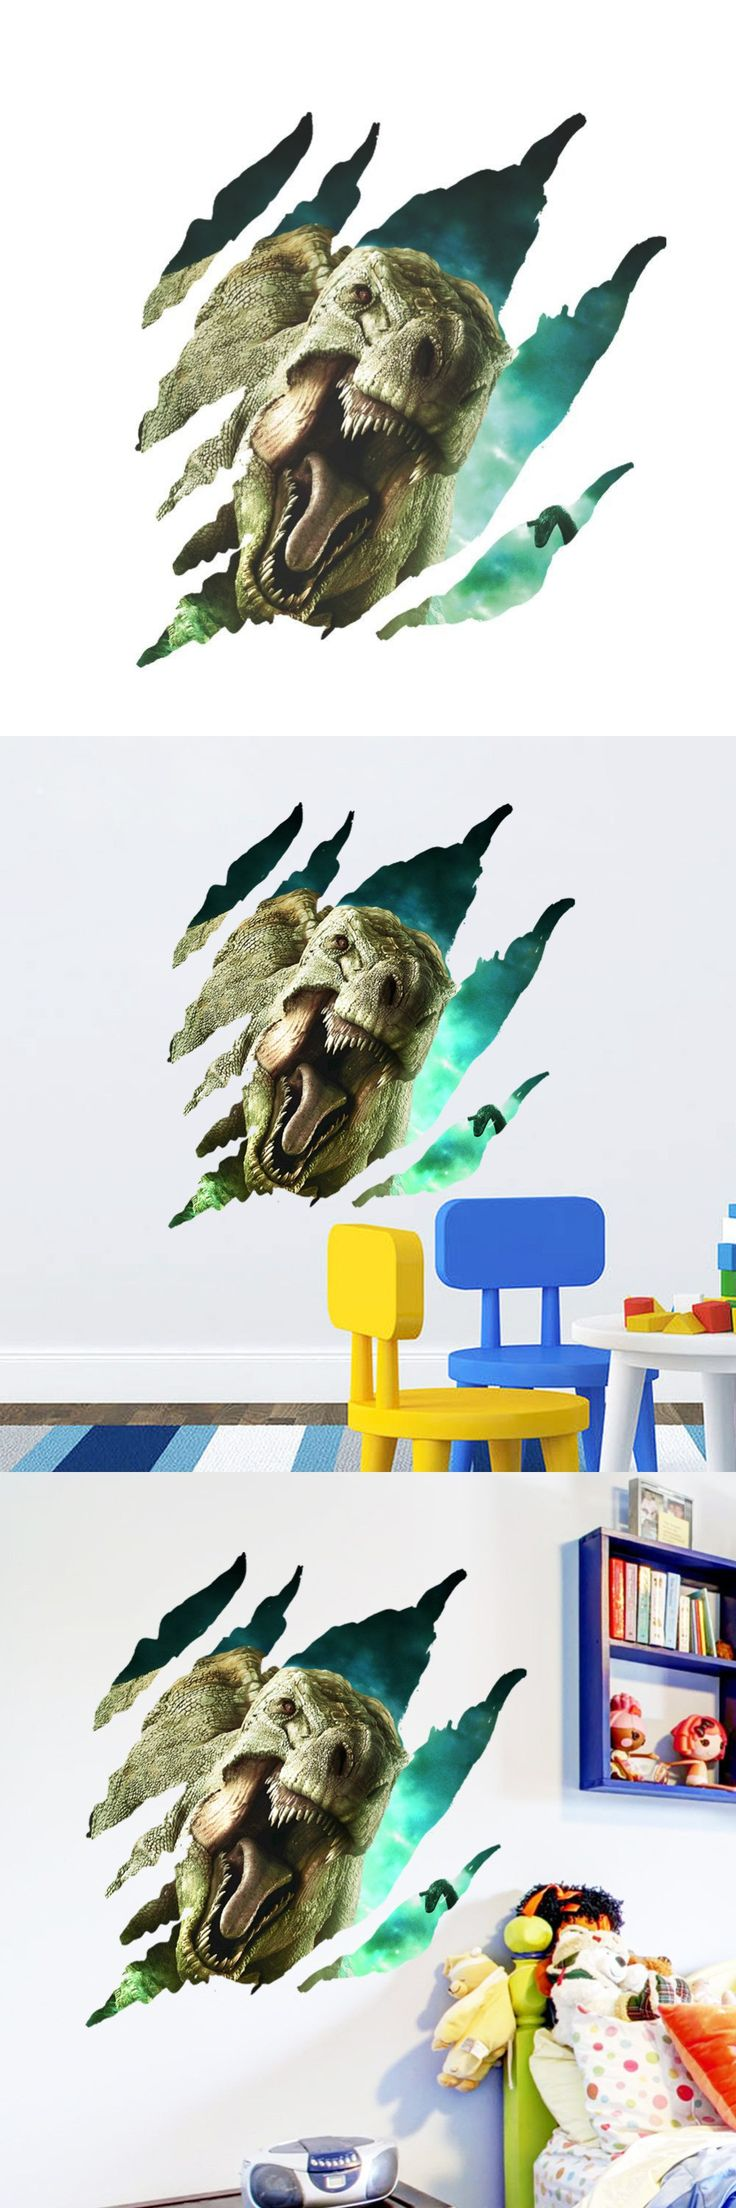 Dinosaur bedroom stickers